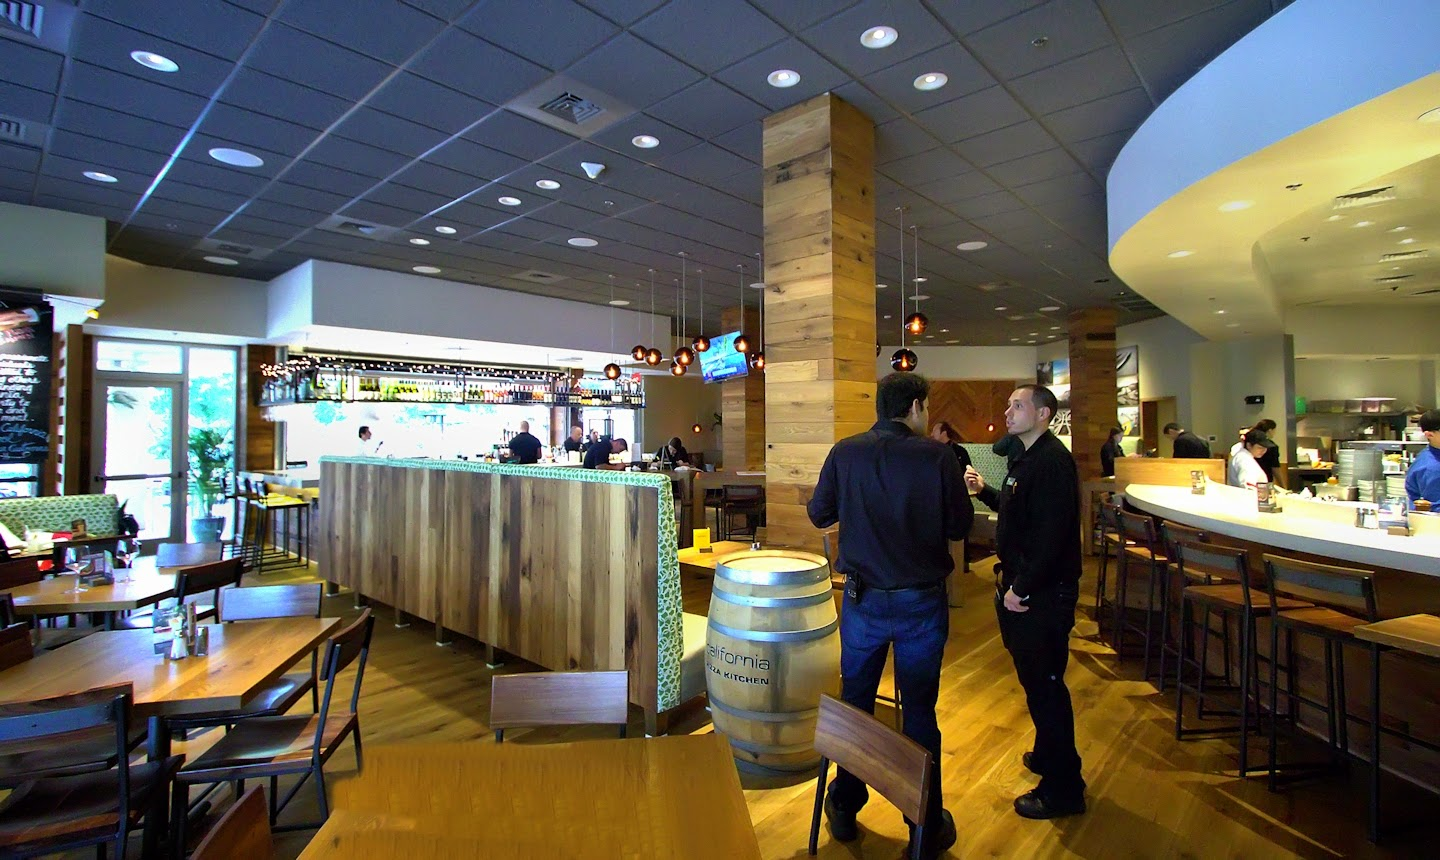 superb California Pizza Kitchen Naples Fl #7: Their dining space is much improved, commodious and inviting.